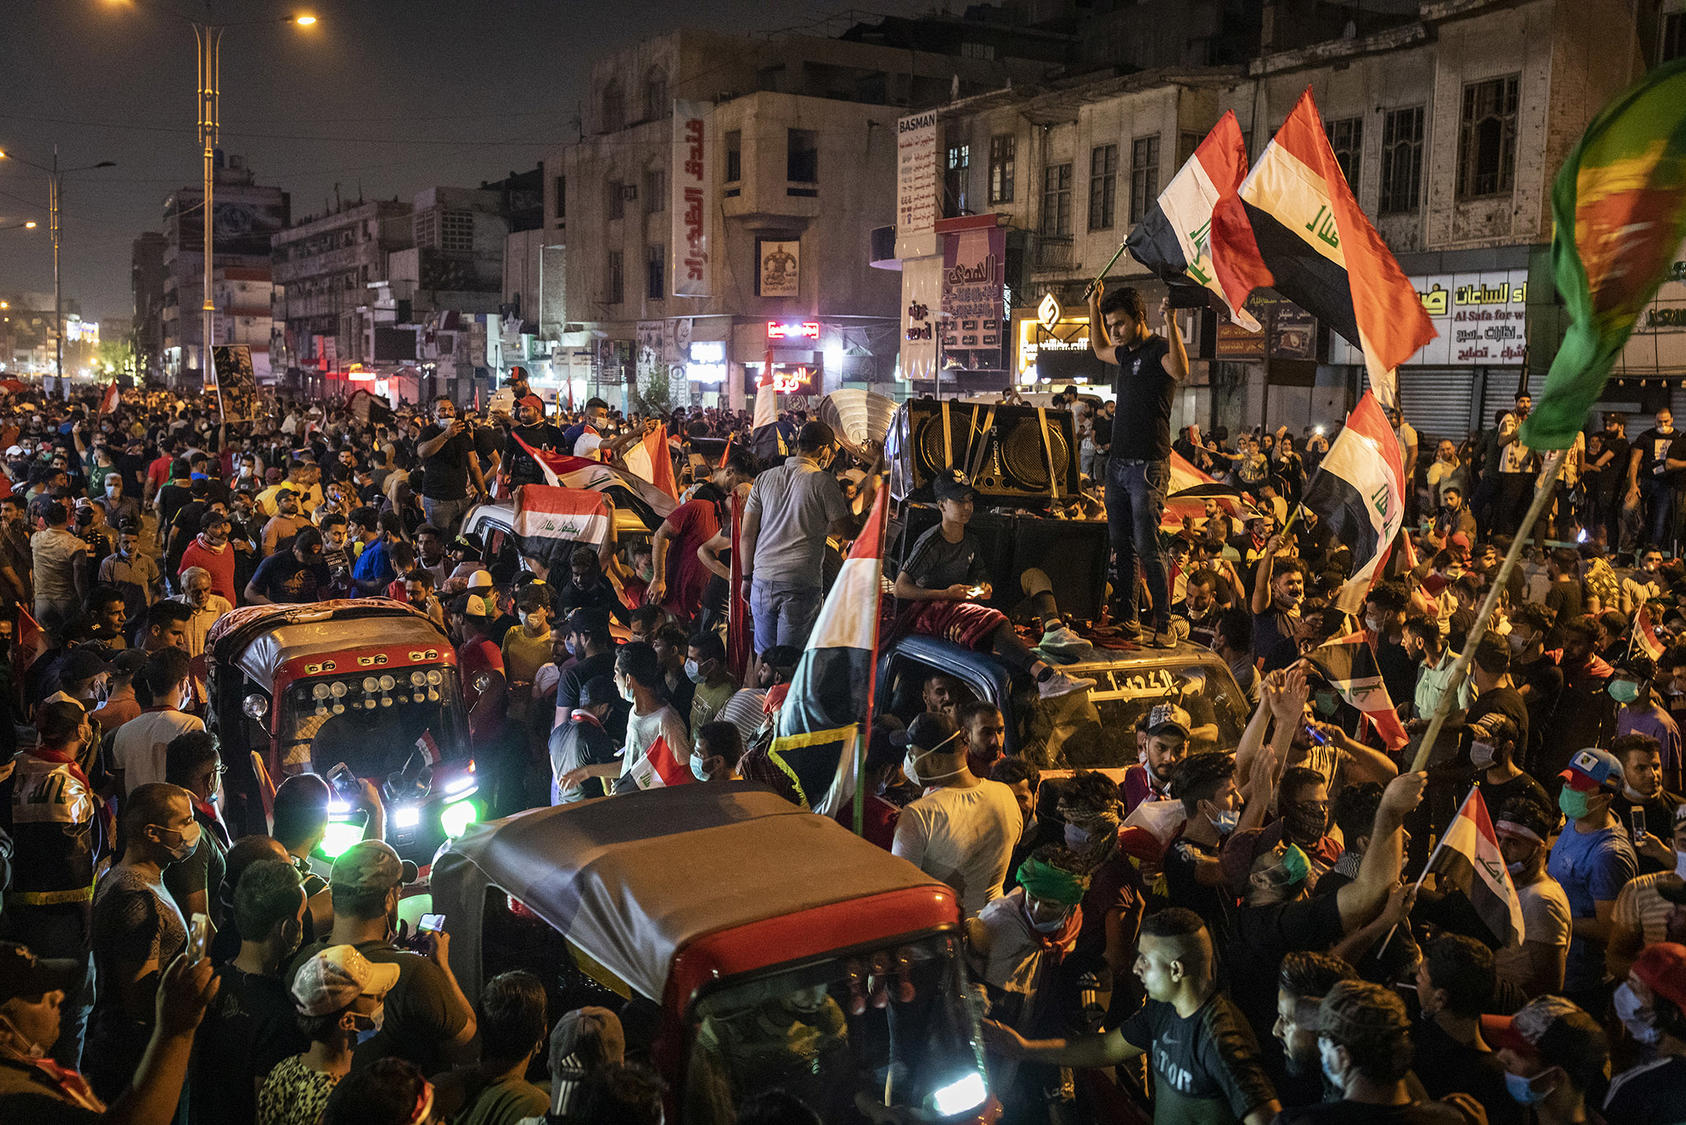 Iraqi protesters, mostly young men, fill streets around Baghdad's Tahrir Square in late October. They demand effectively 'a new social contract' among Iraqis, USIP's Elie Abouaoun says. (Ivor Prickett/The New York Times)